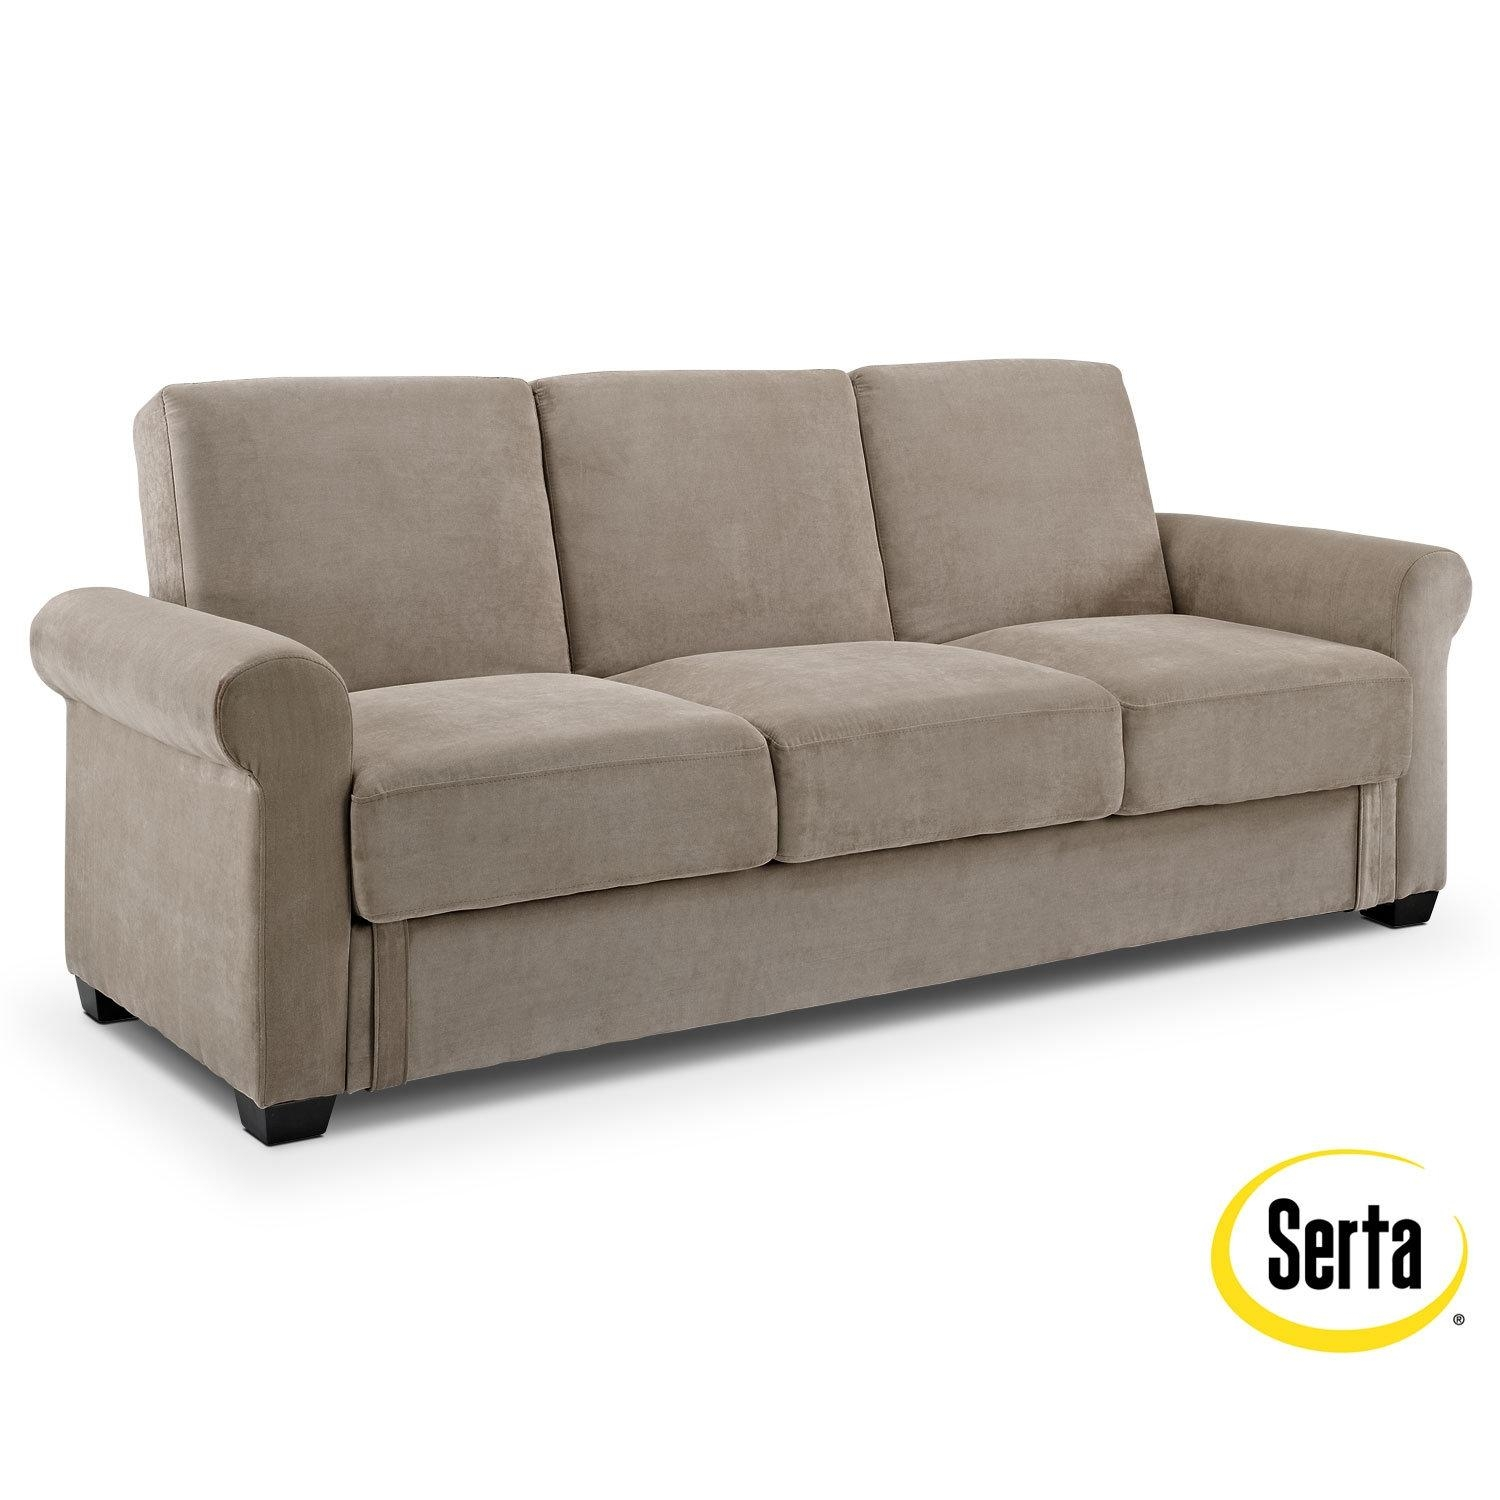 Euro Lounger Sofa With Concept Image 28644 | Kengire Within Euro Lounger Sofa Beds (View 17 of 20)